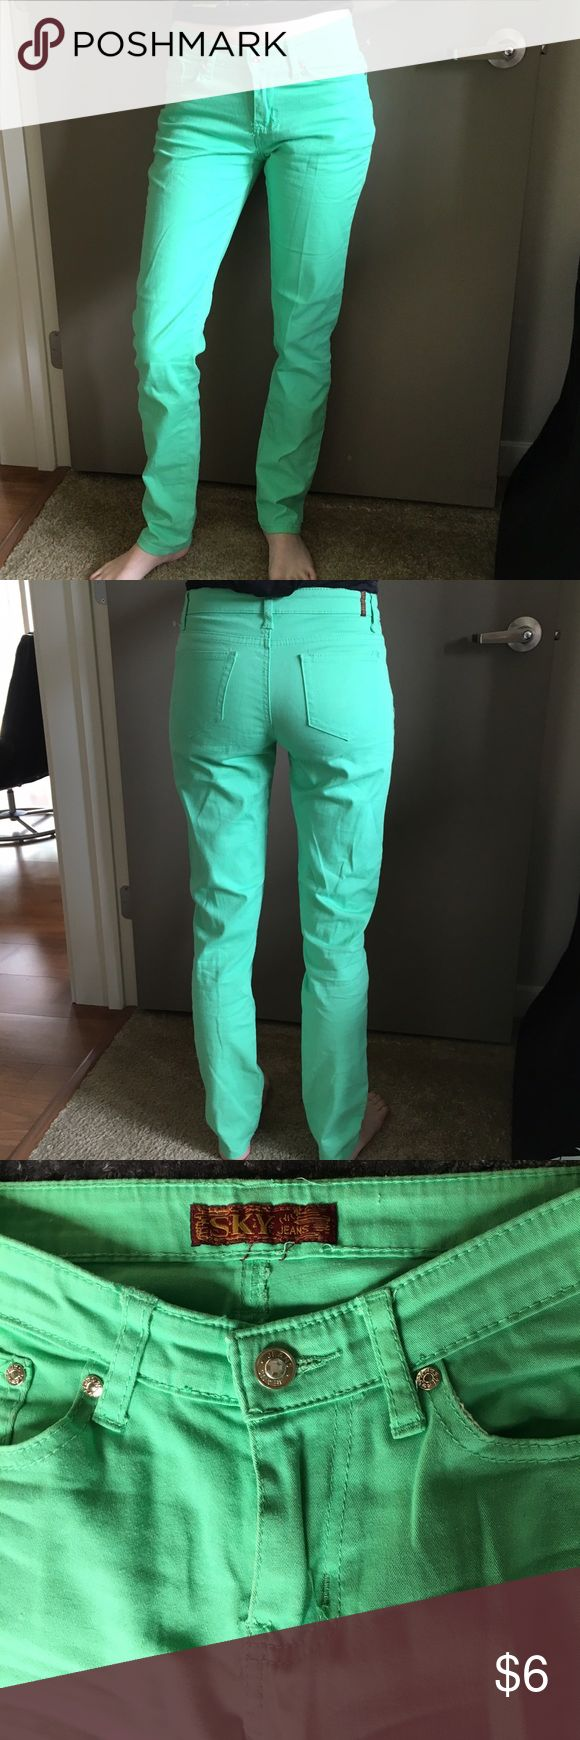 Sky Jeans, Mint Green, Size 7/8 Light material, great for summer time, mint green jeans, with couple very faded shows of wear shown in last picture, otherwise in great gently used condition:) From JCPenny. Sky Jeans Jeans Straight Leg